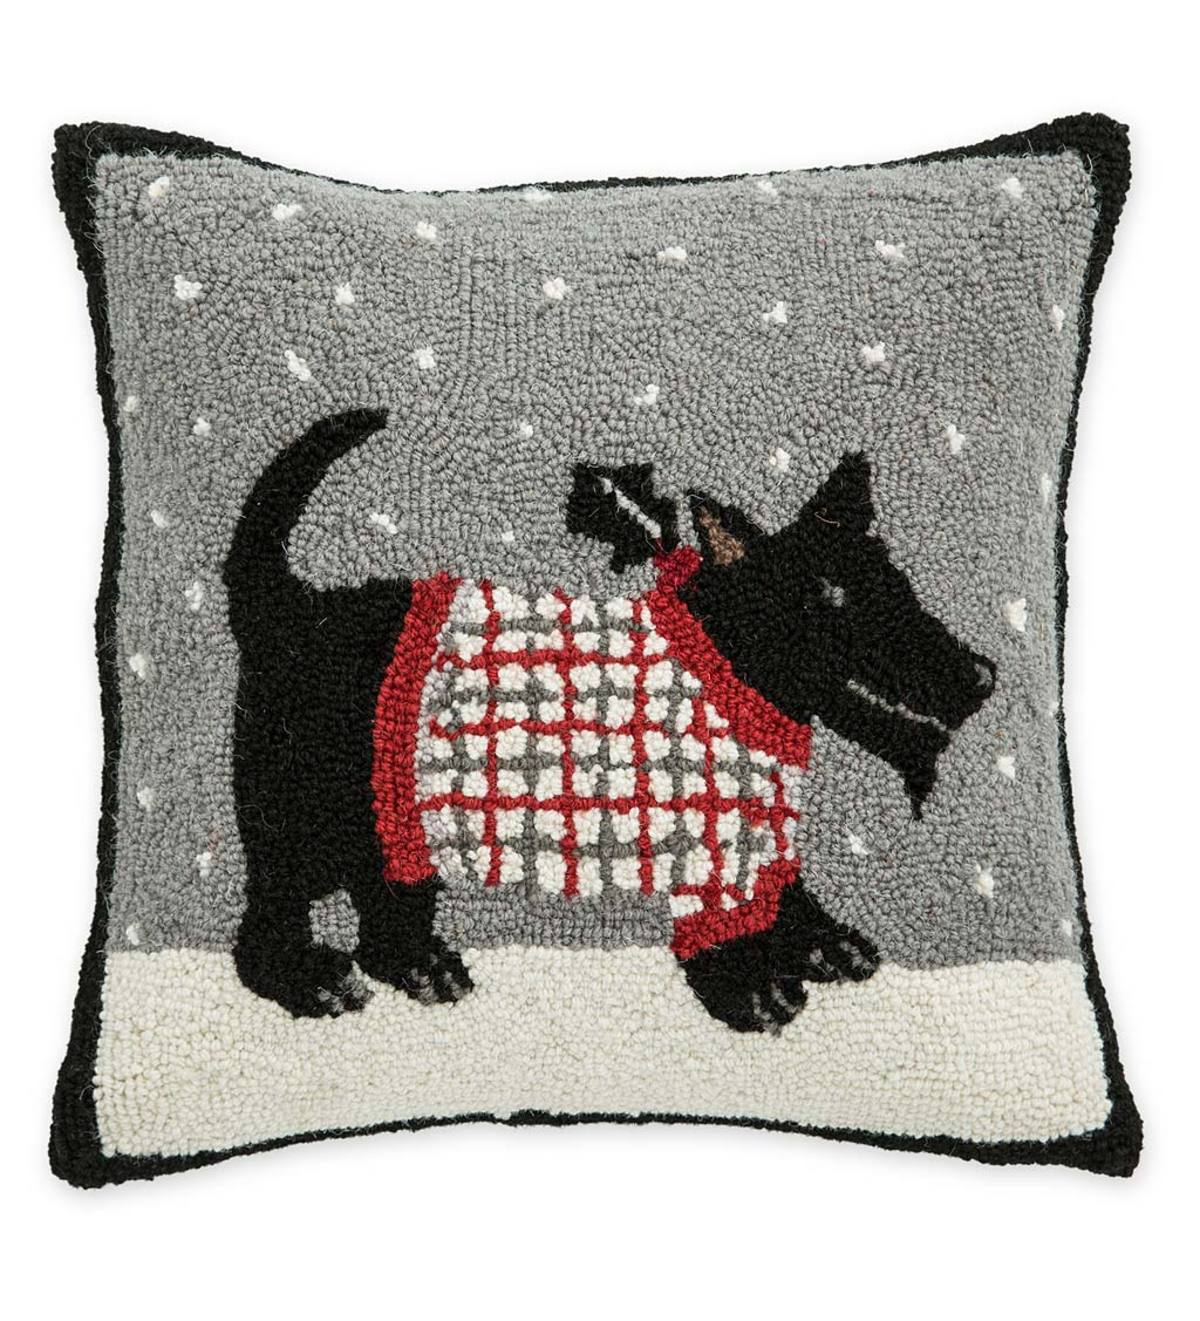 Hand-Hooked Wool Scottish Terrier Snow Day Throw Pillow